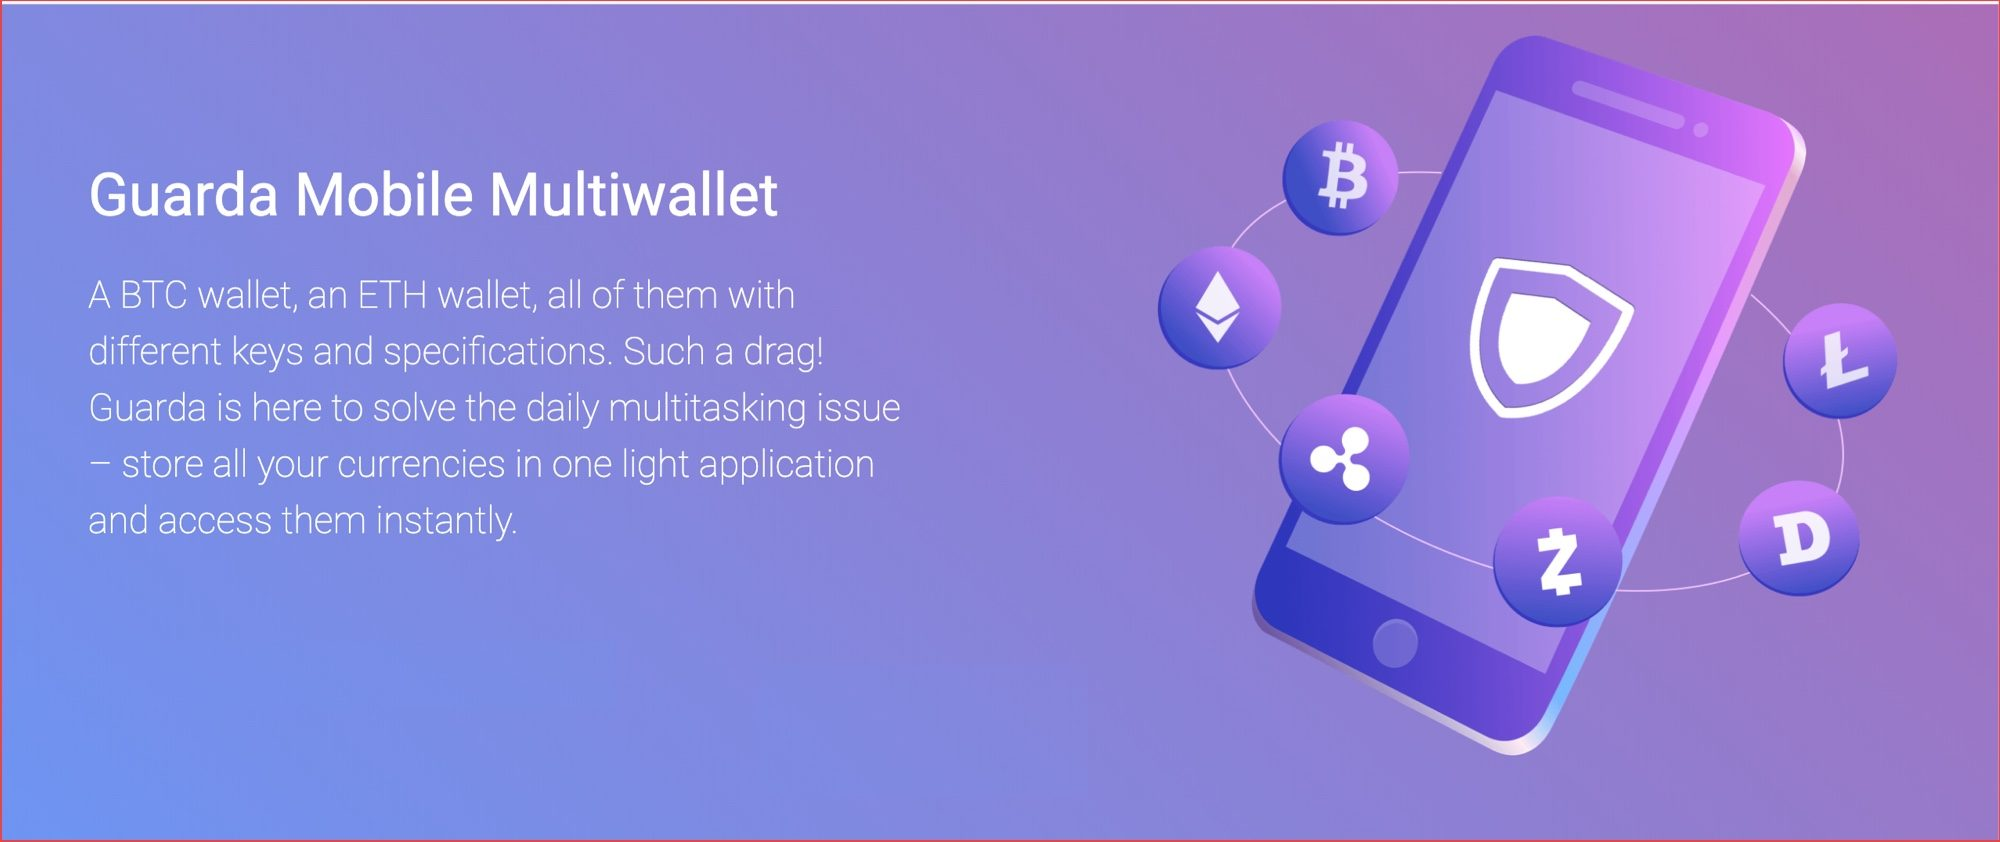 Guarda Wallet Review 2019: Features, Security & More